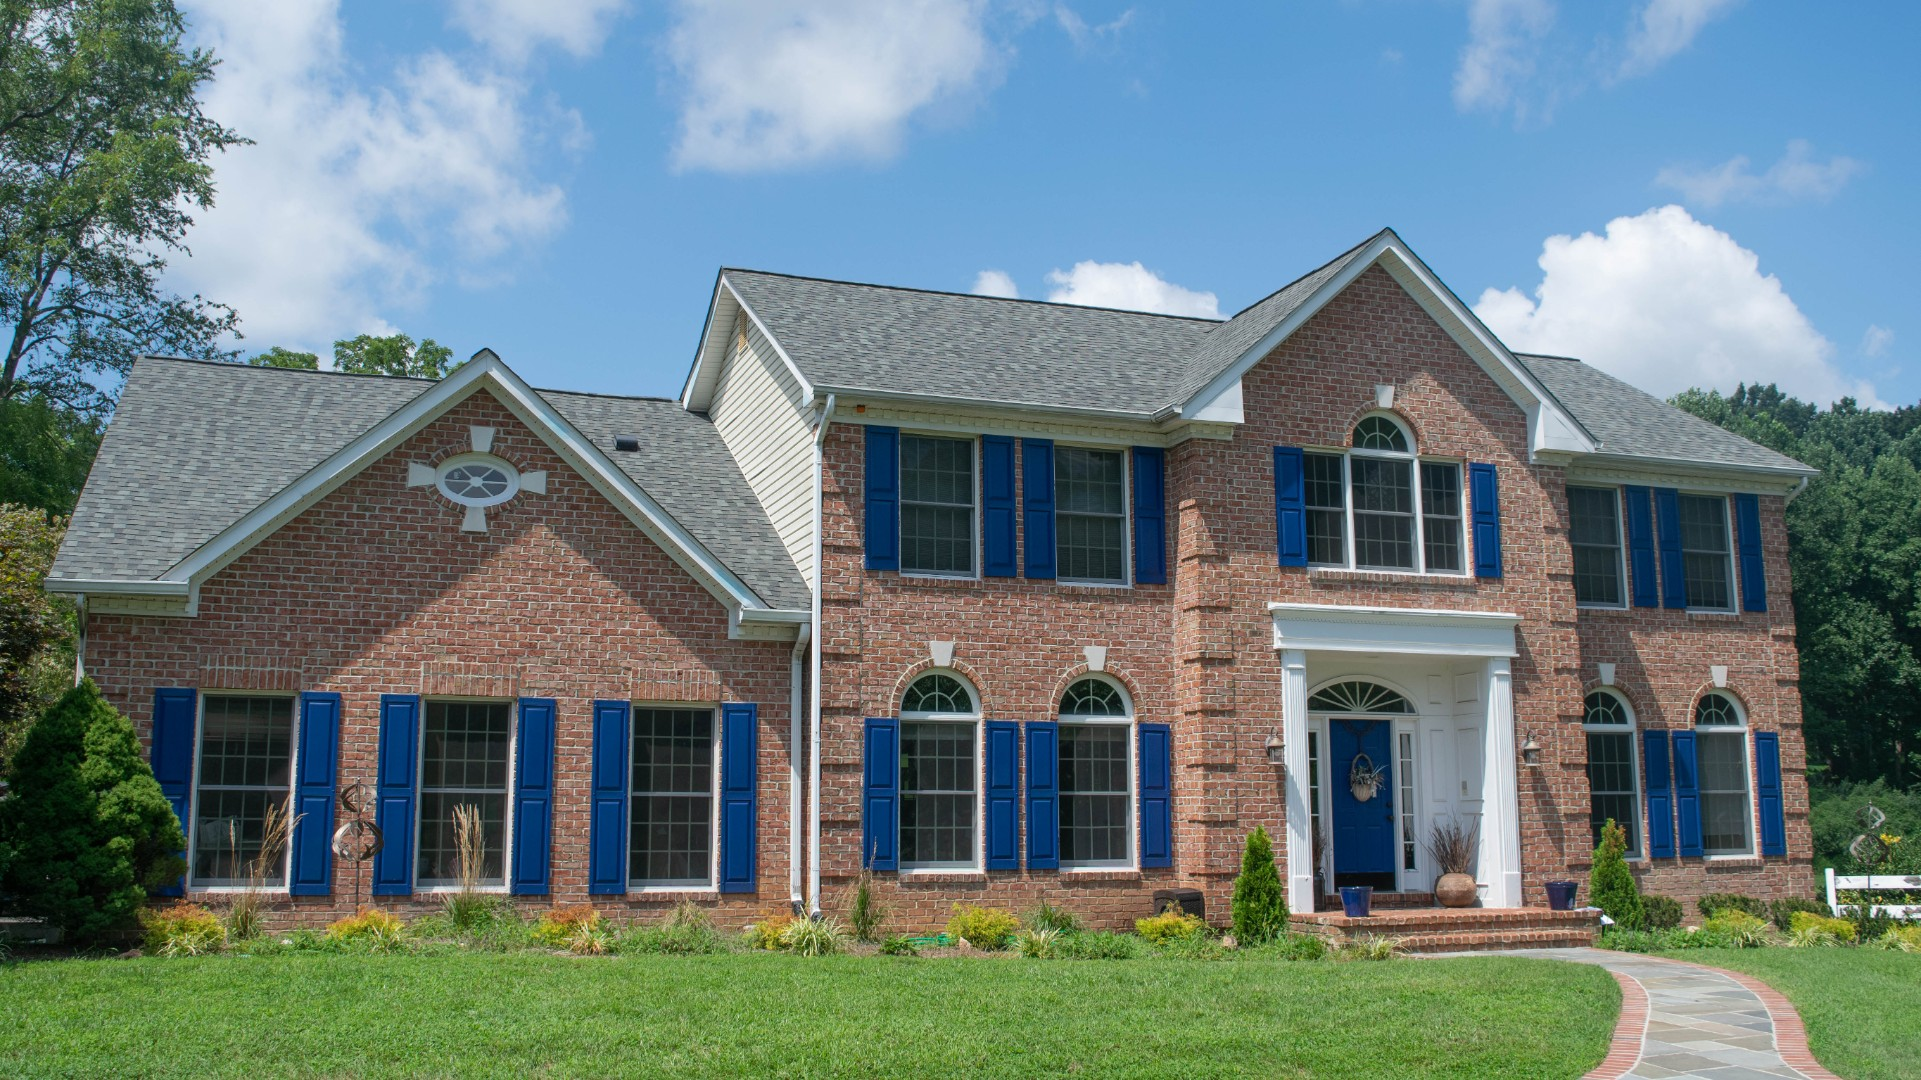 SmartRoof - Residential, Commercial Bellmawr Roofing Contractors